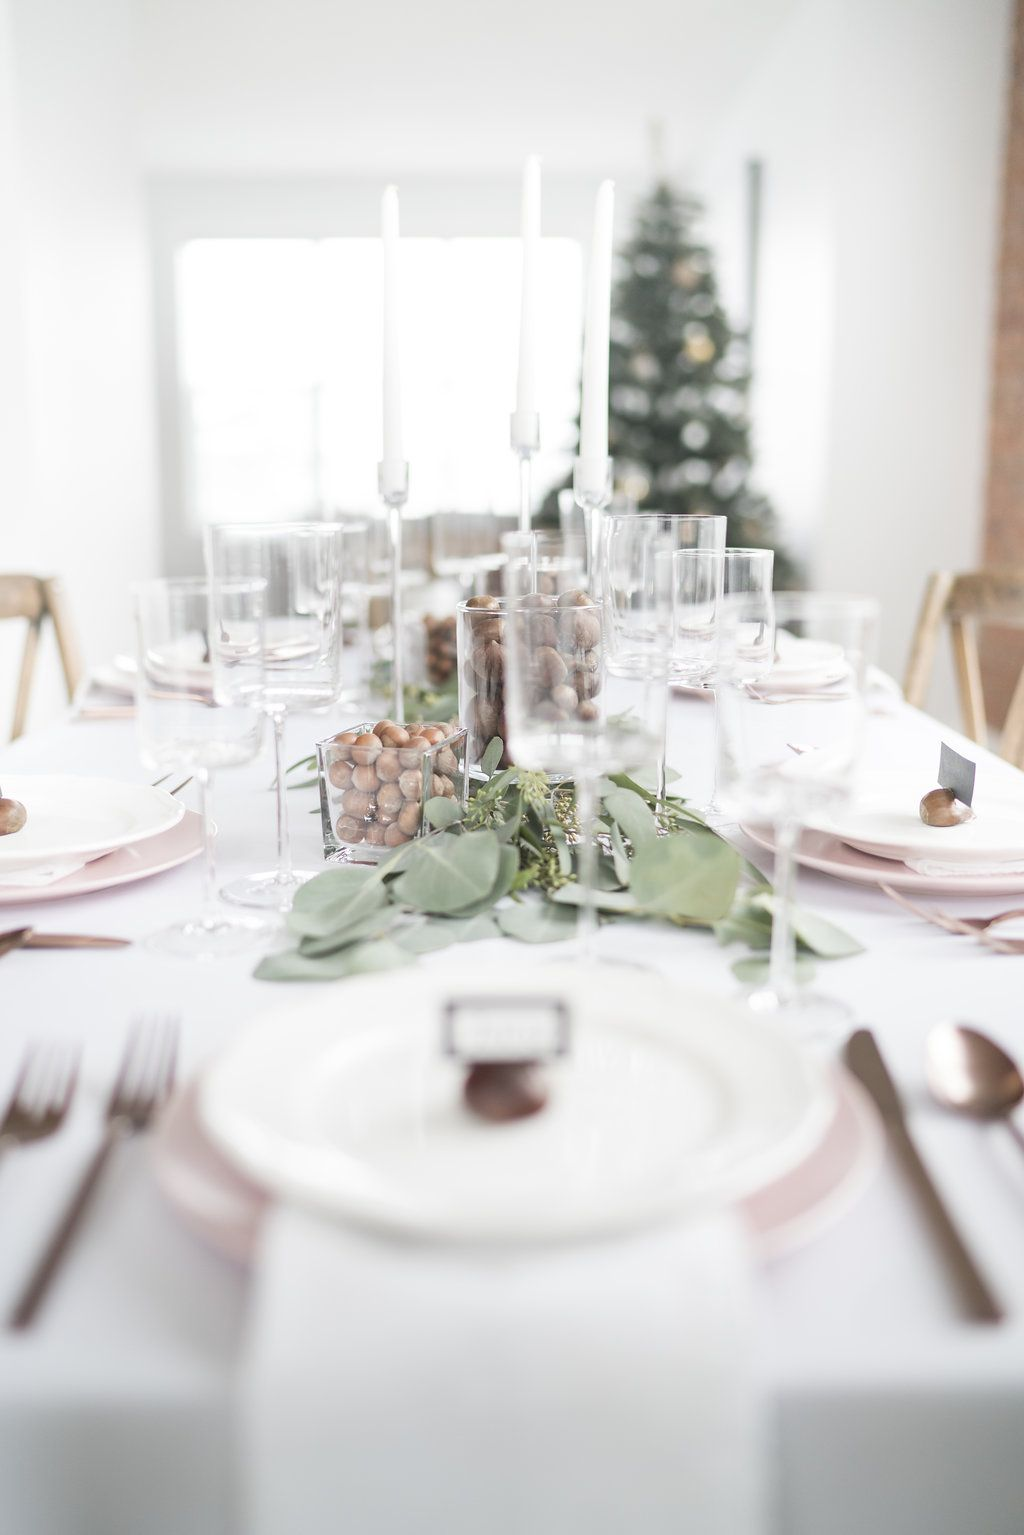 setting the table for the holidays entertaining dinner parties rh pinterest com